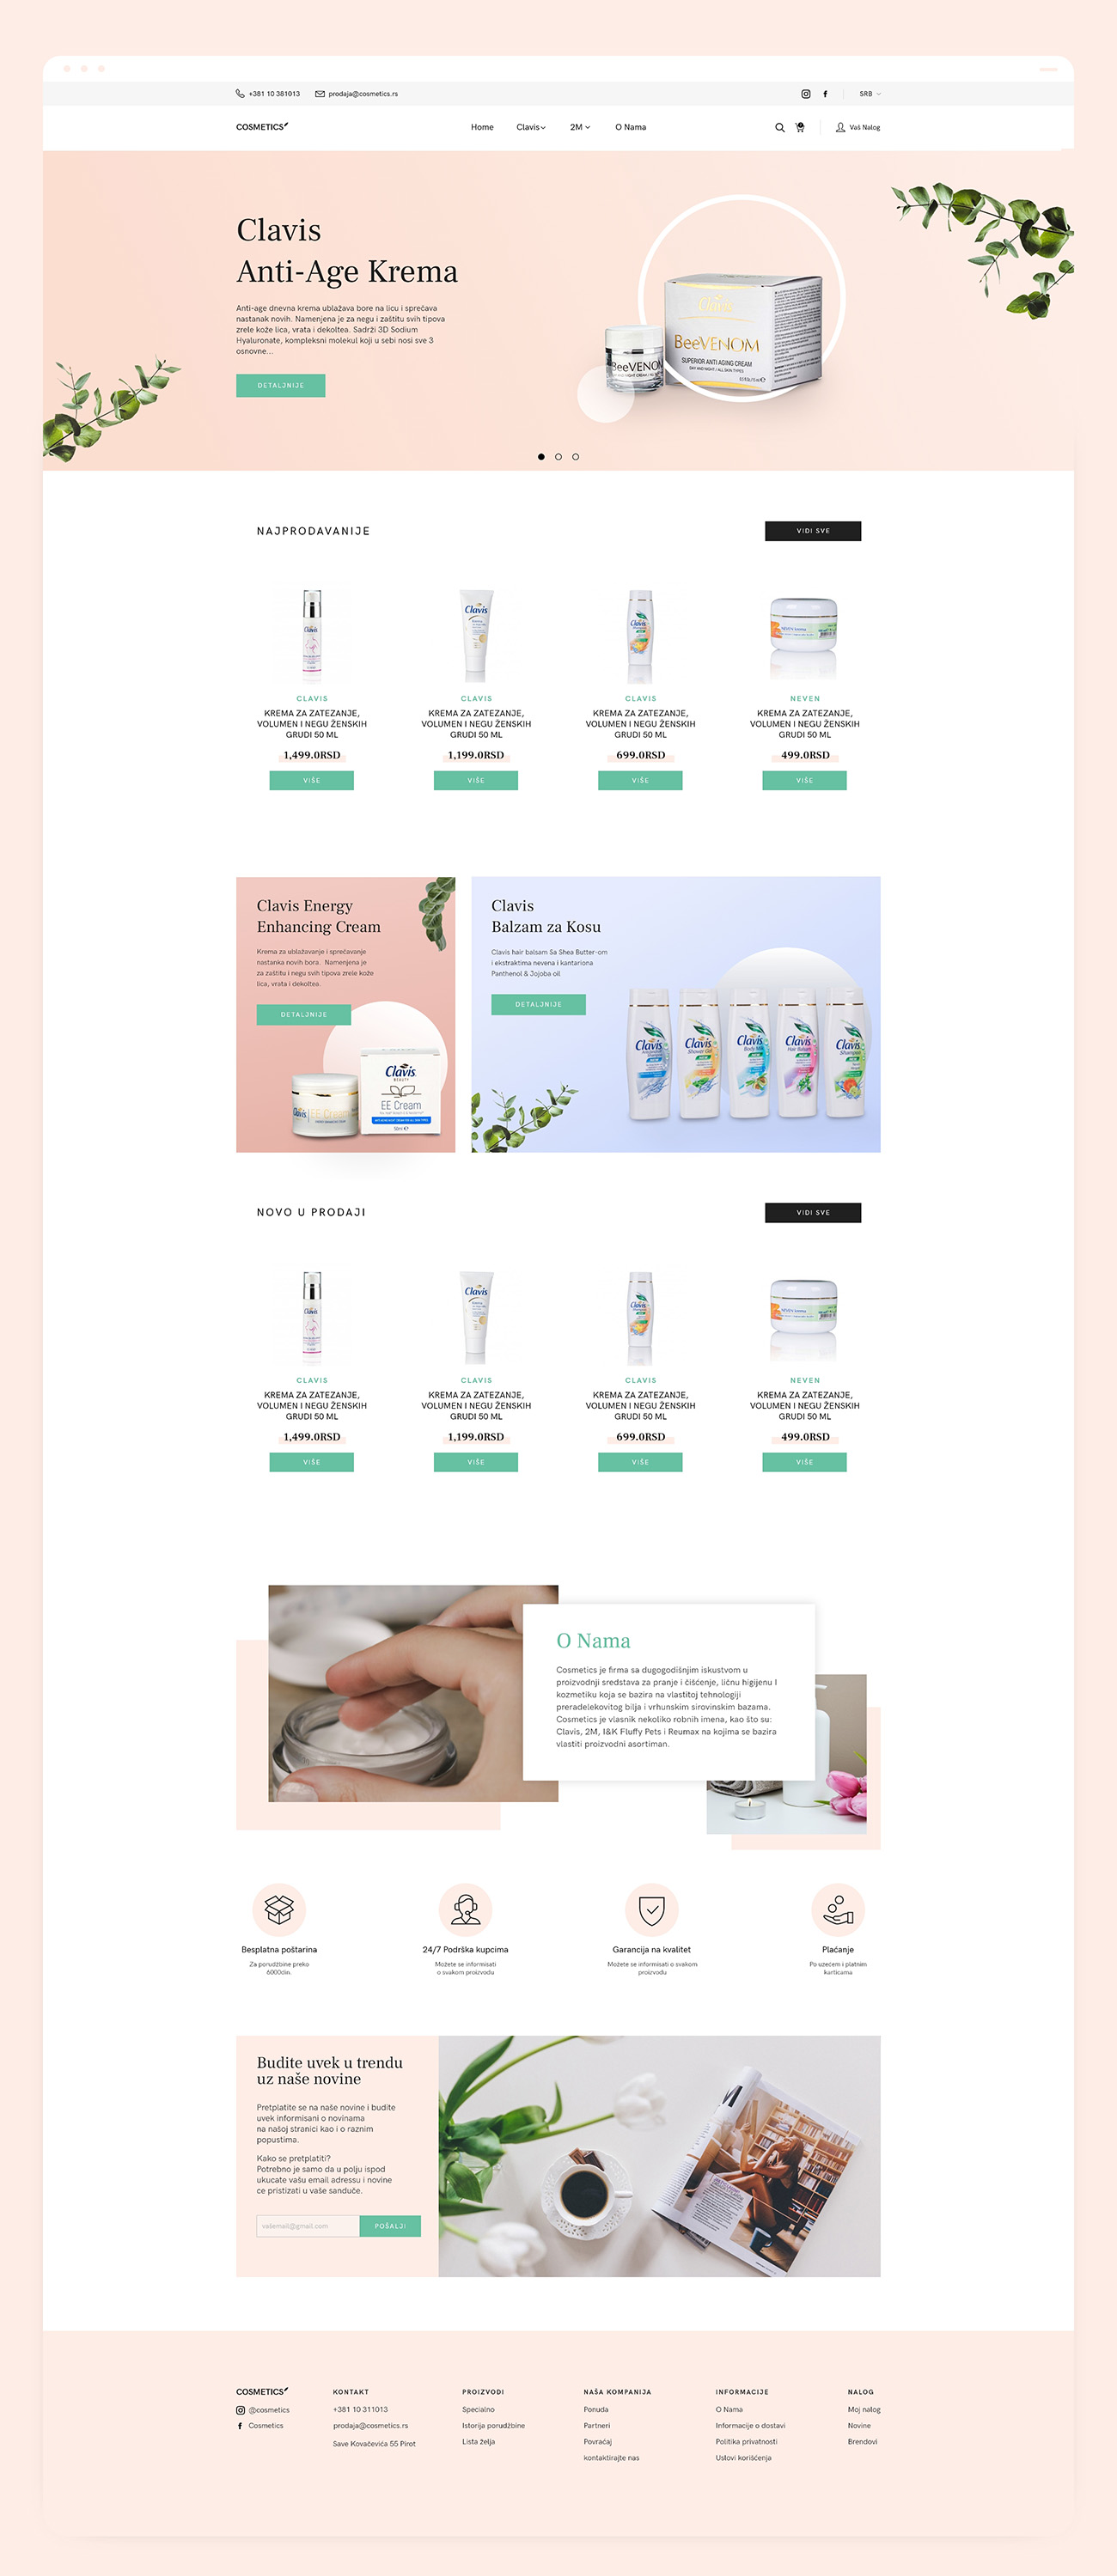 Cosmetics Case Study Full Landing Page Showcase